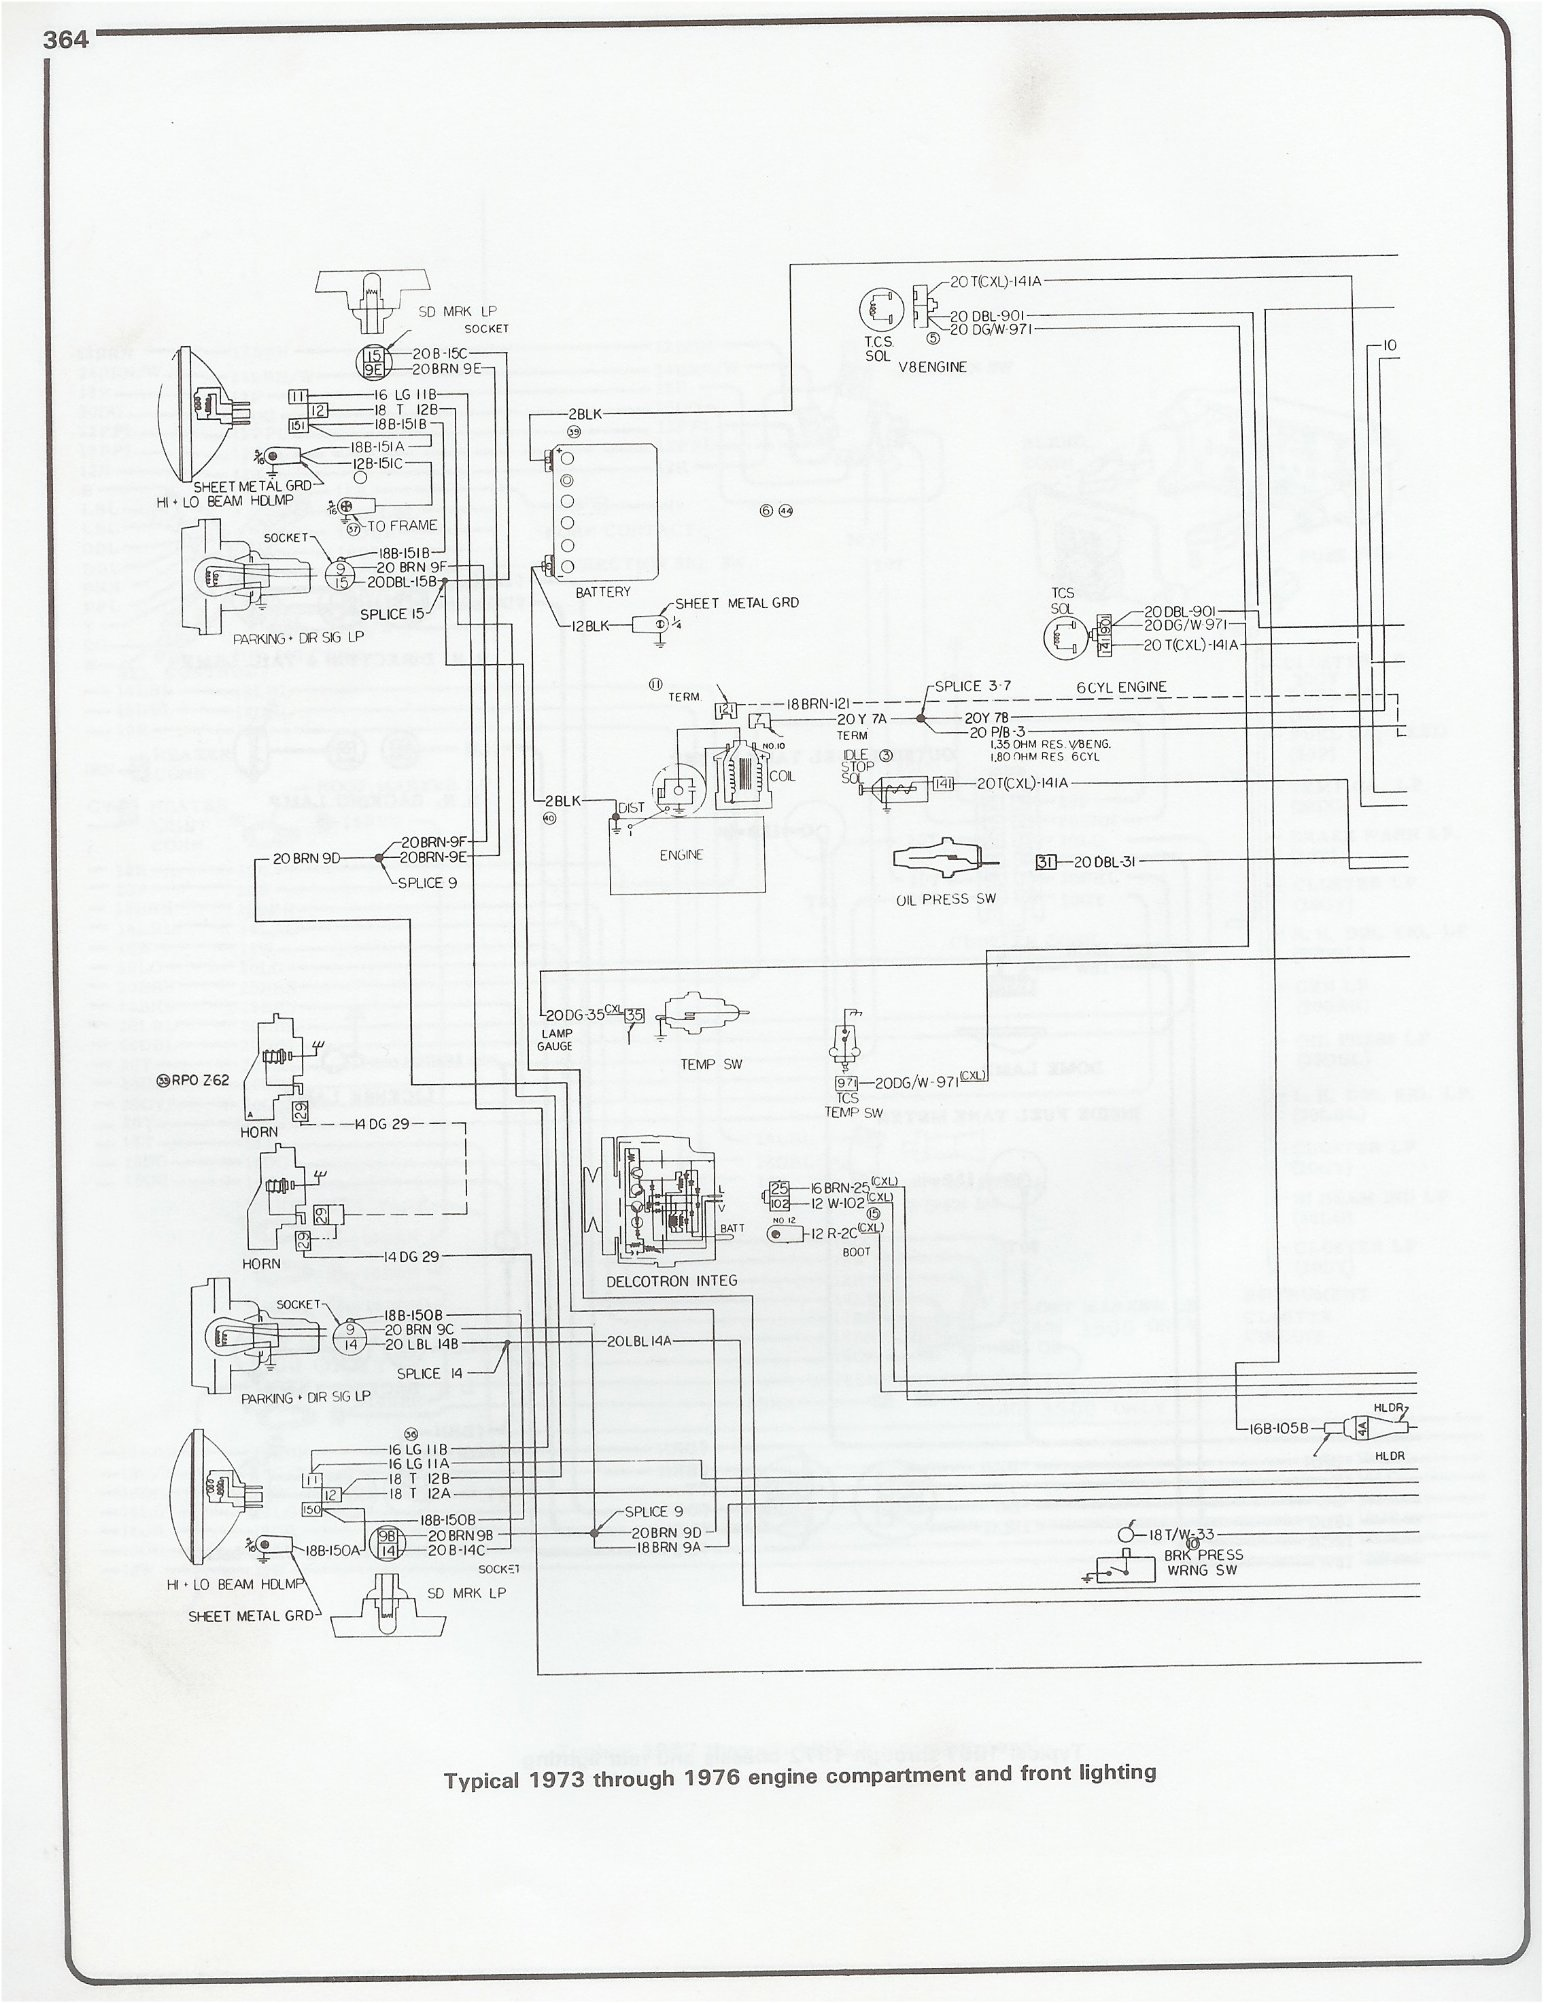 Fabulous 1973 Engine Wiring Diagram Basic Electronics Wiring Diagram Wiring Cloud Oideiuggs Outletorg